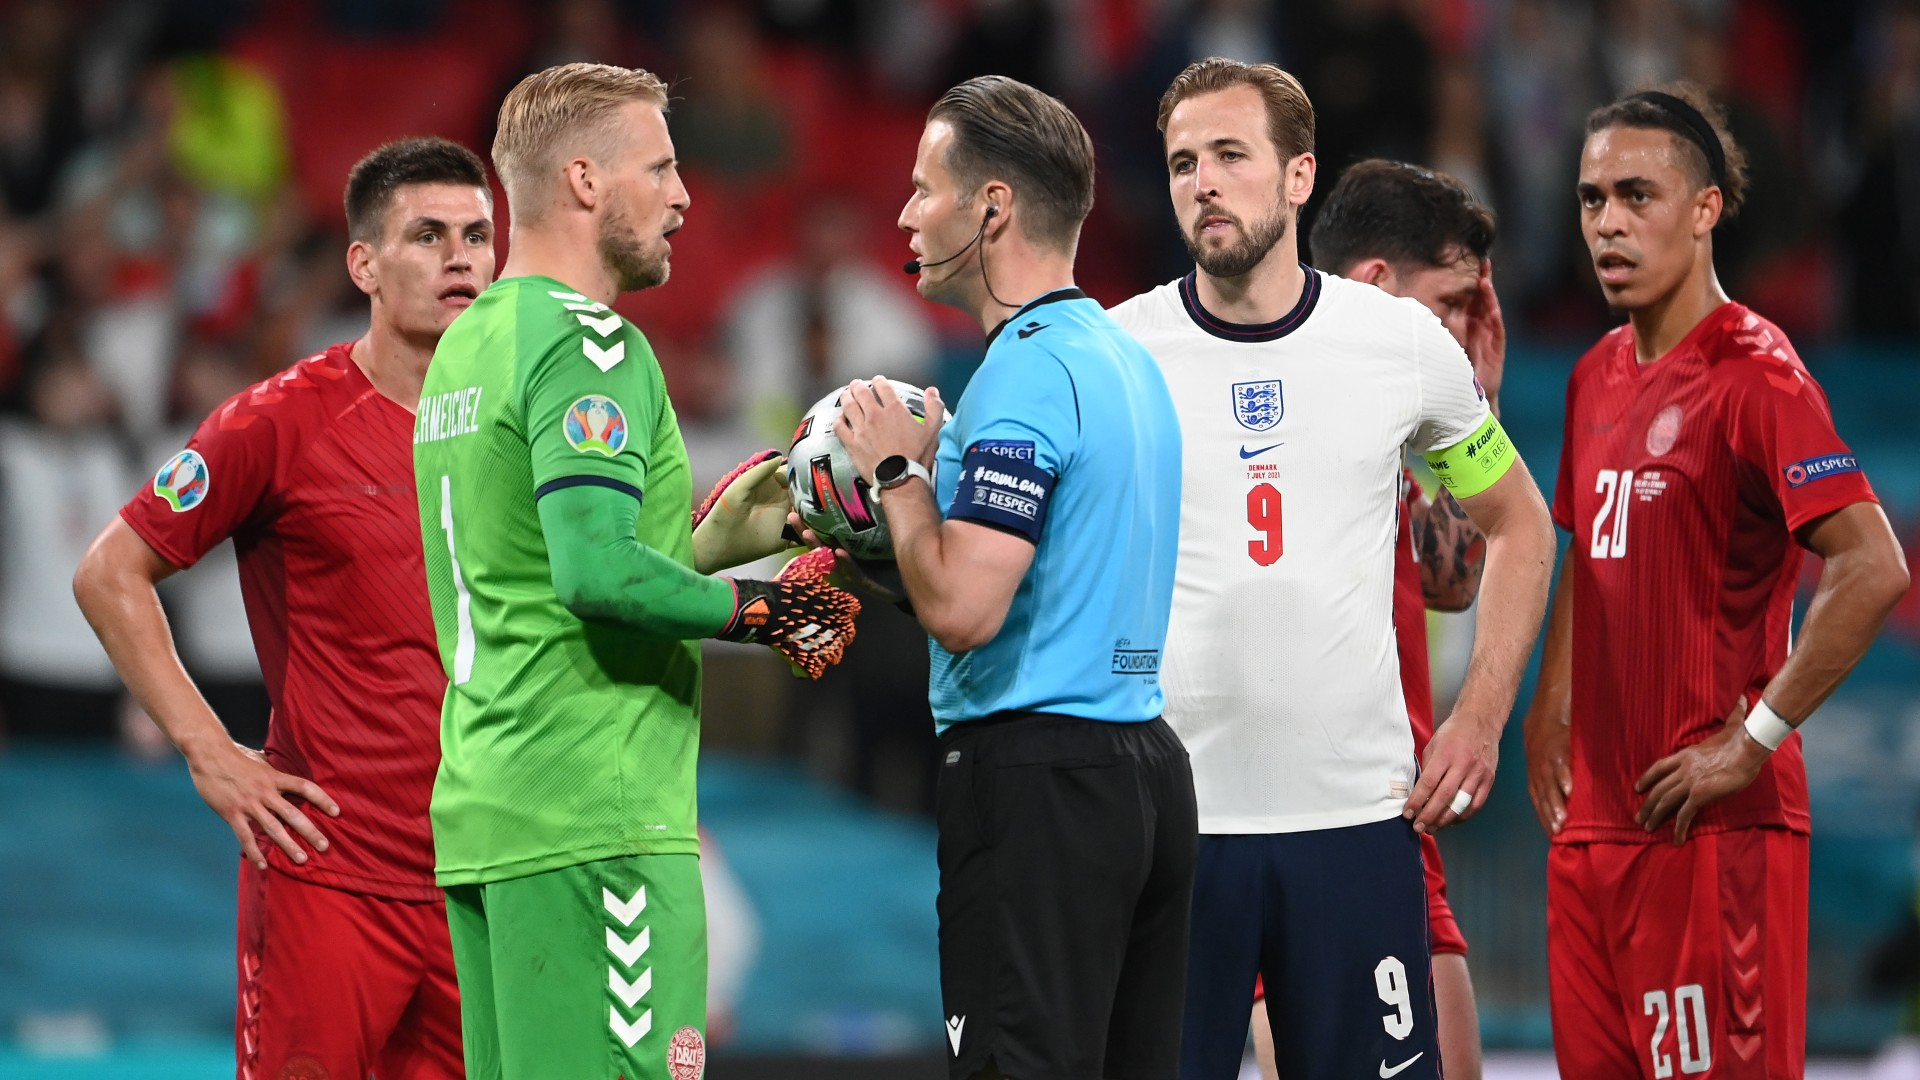 England charged over 'laser pointer' shone at Schmeichel in Euro 2020 semi-final win over Denmark